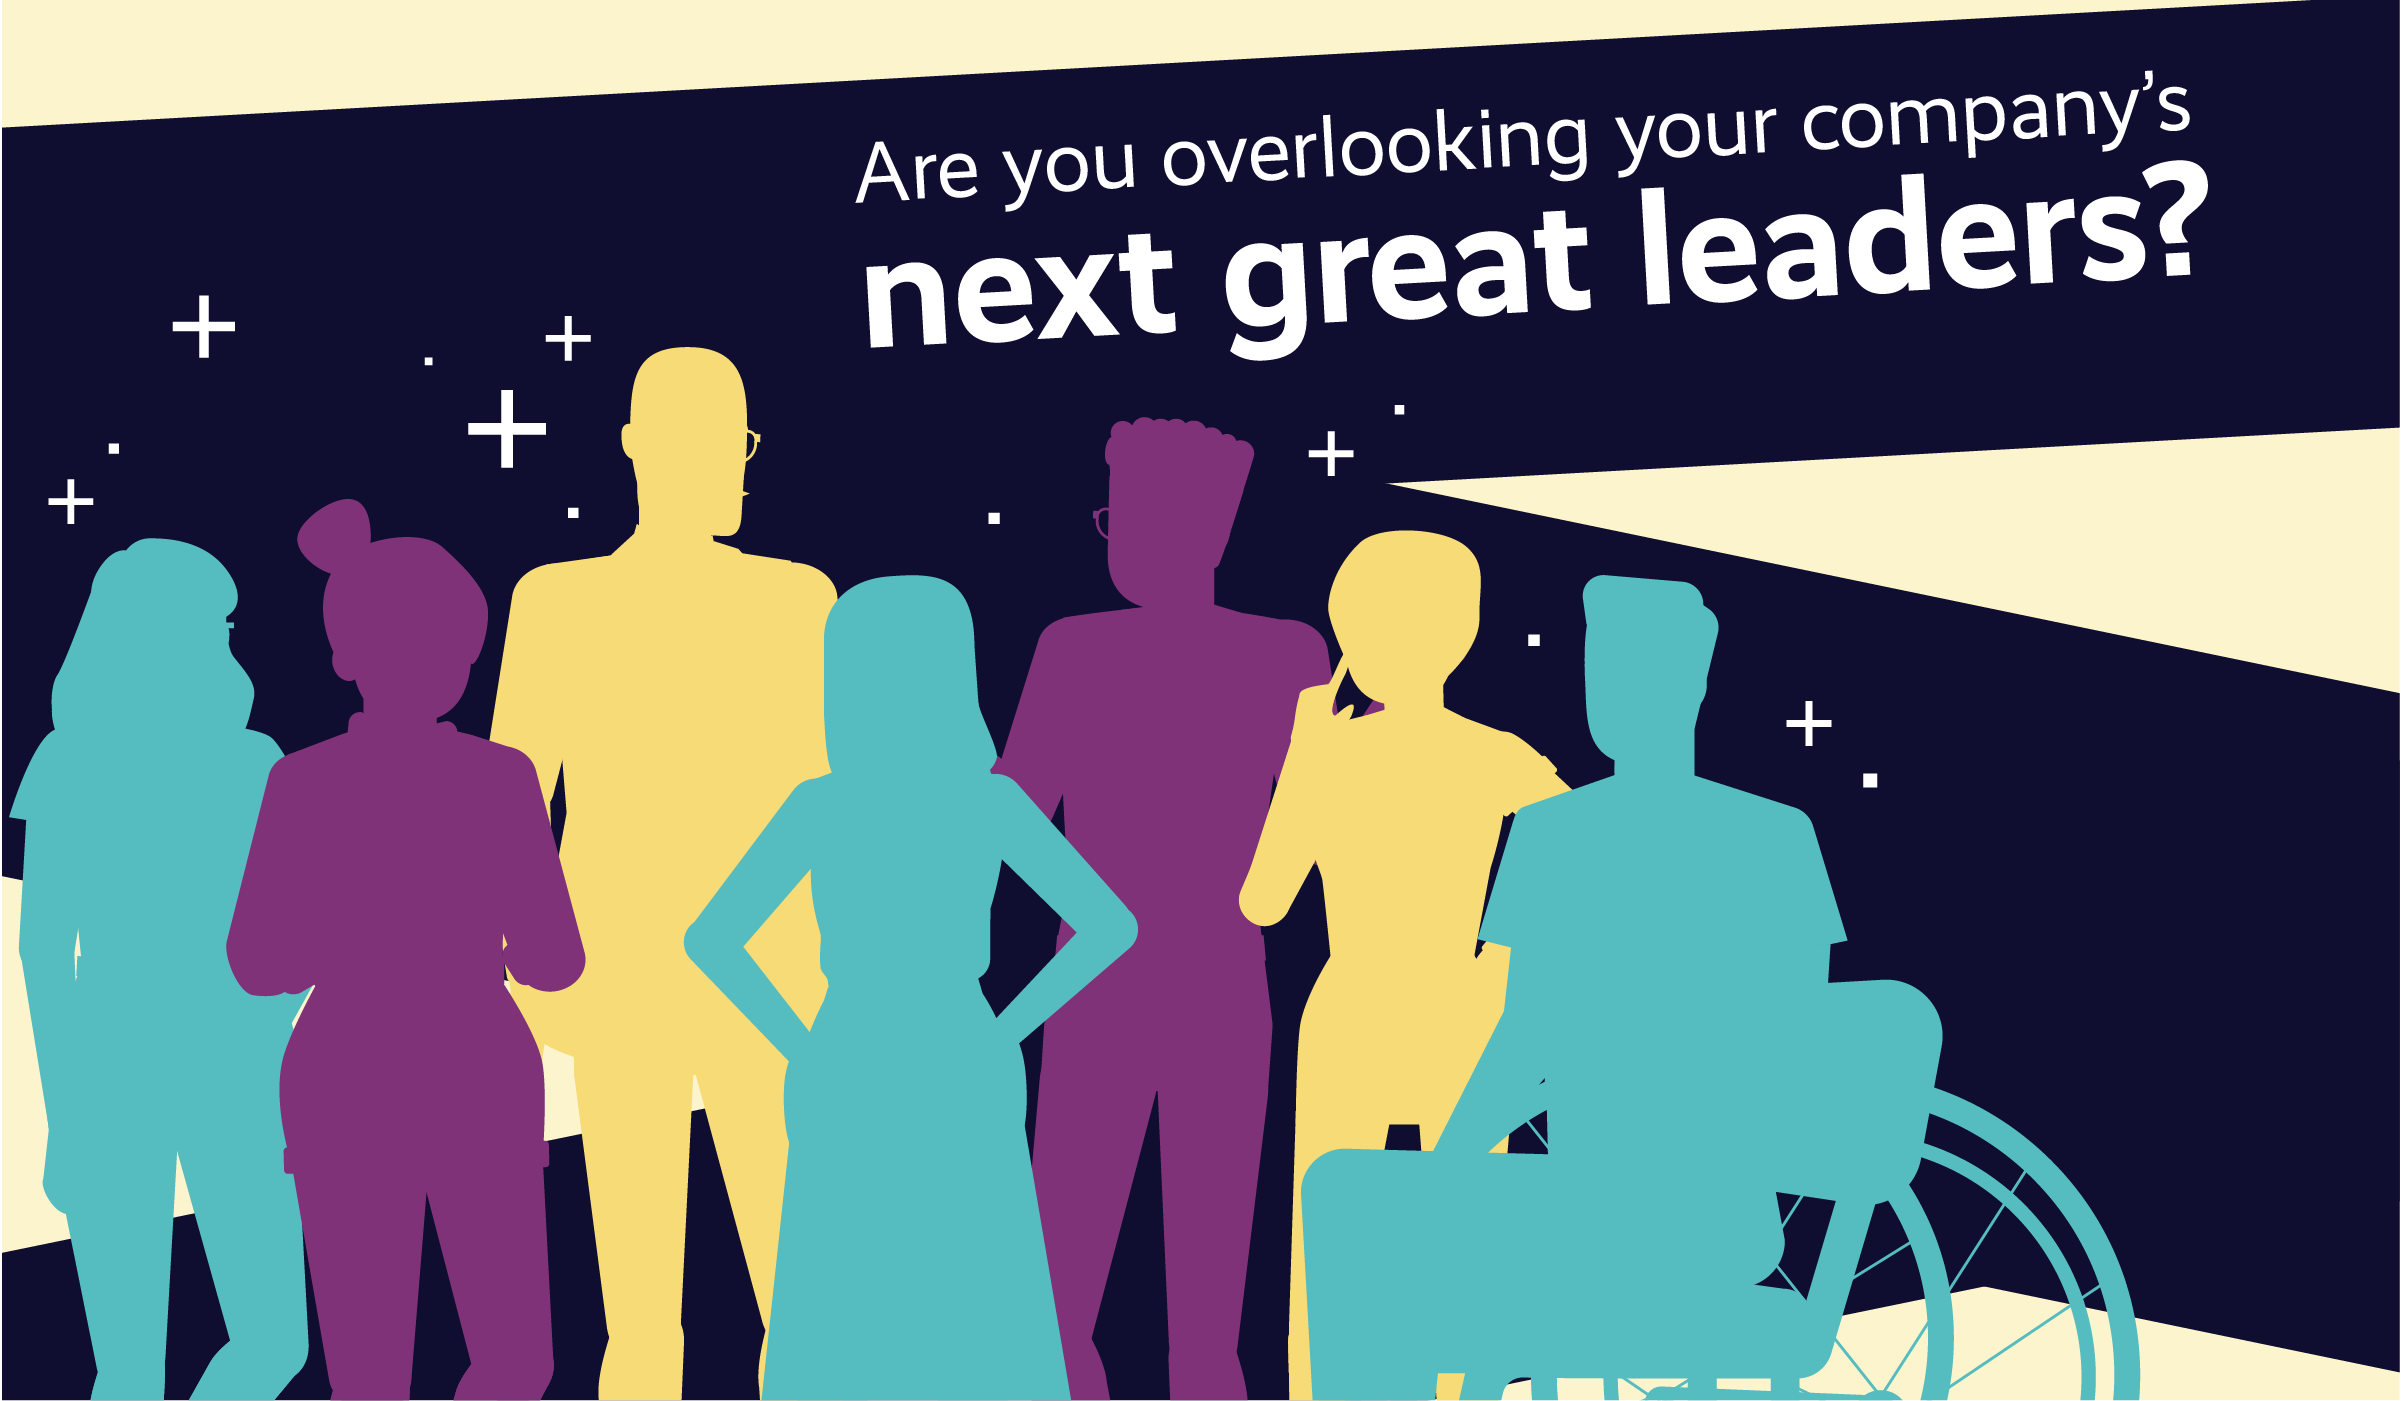 Are you overlooking your company's next great leaders?